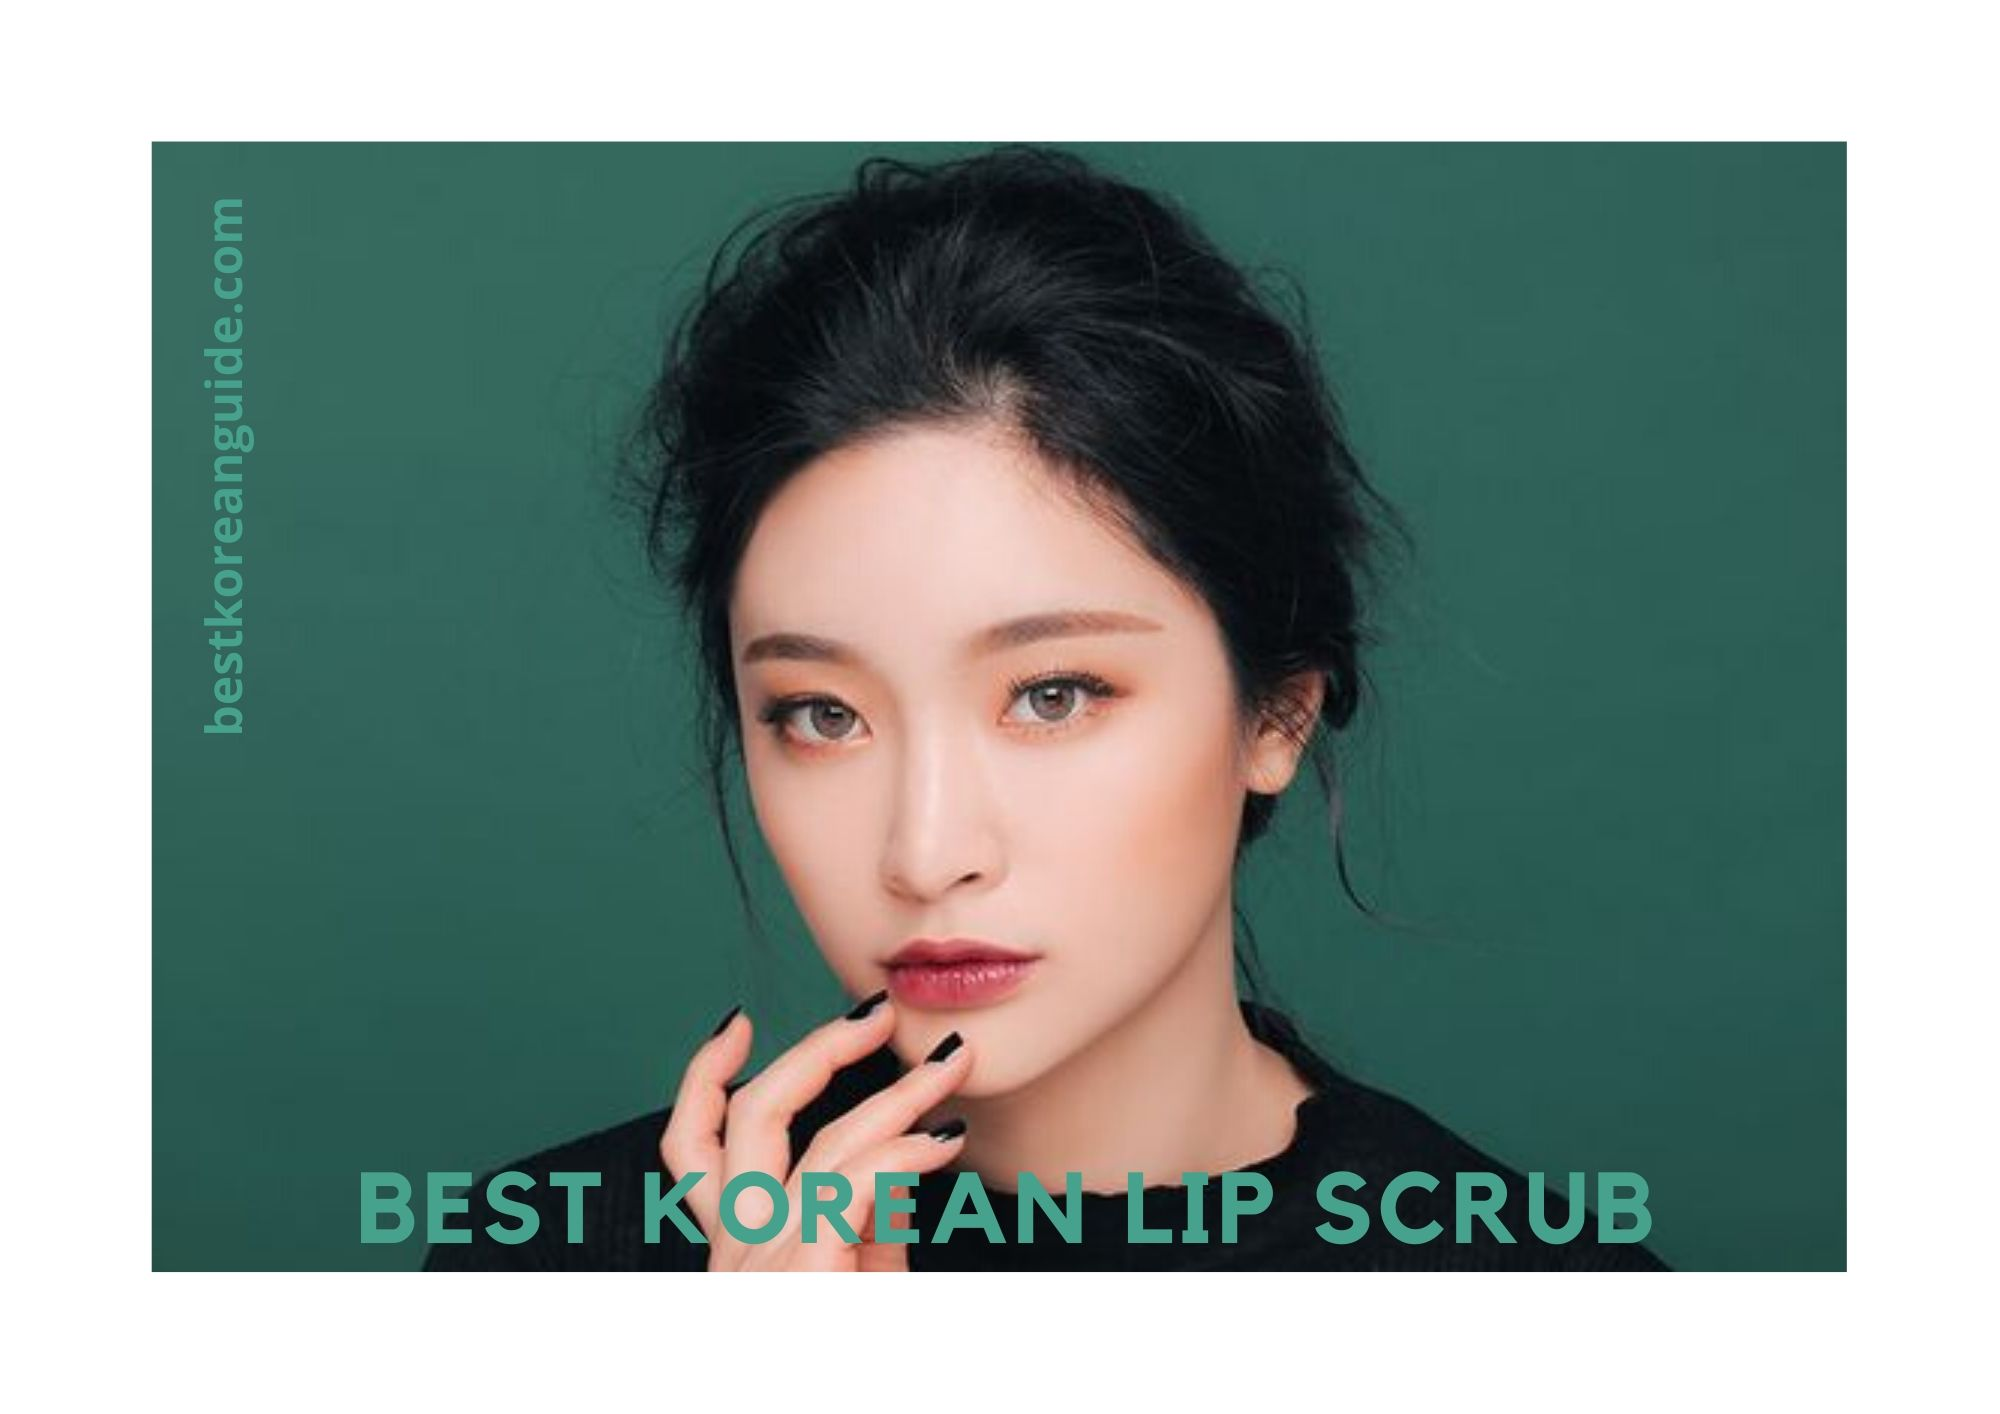 Best Korean Lip Scrub